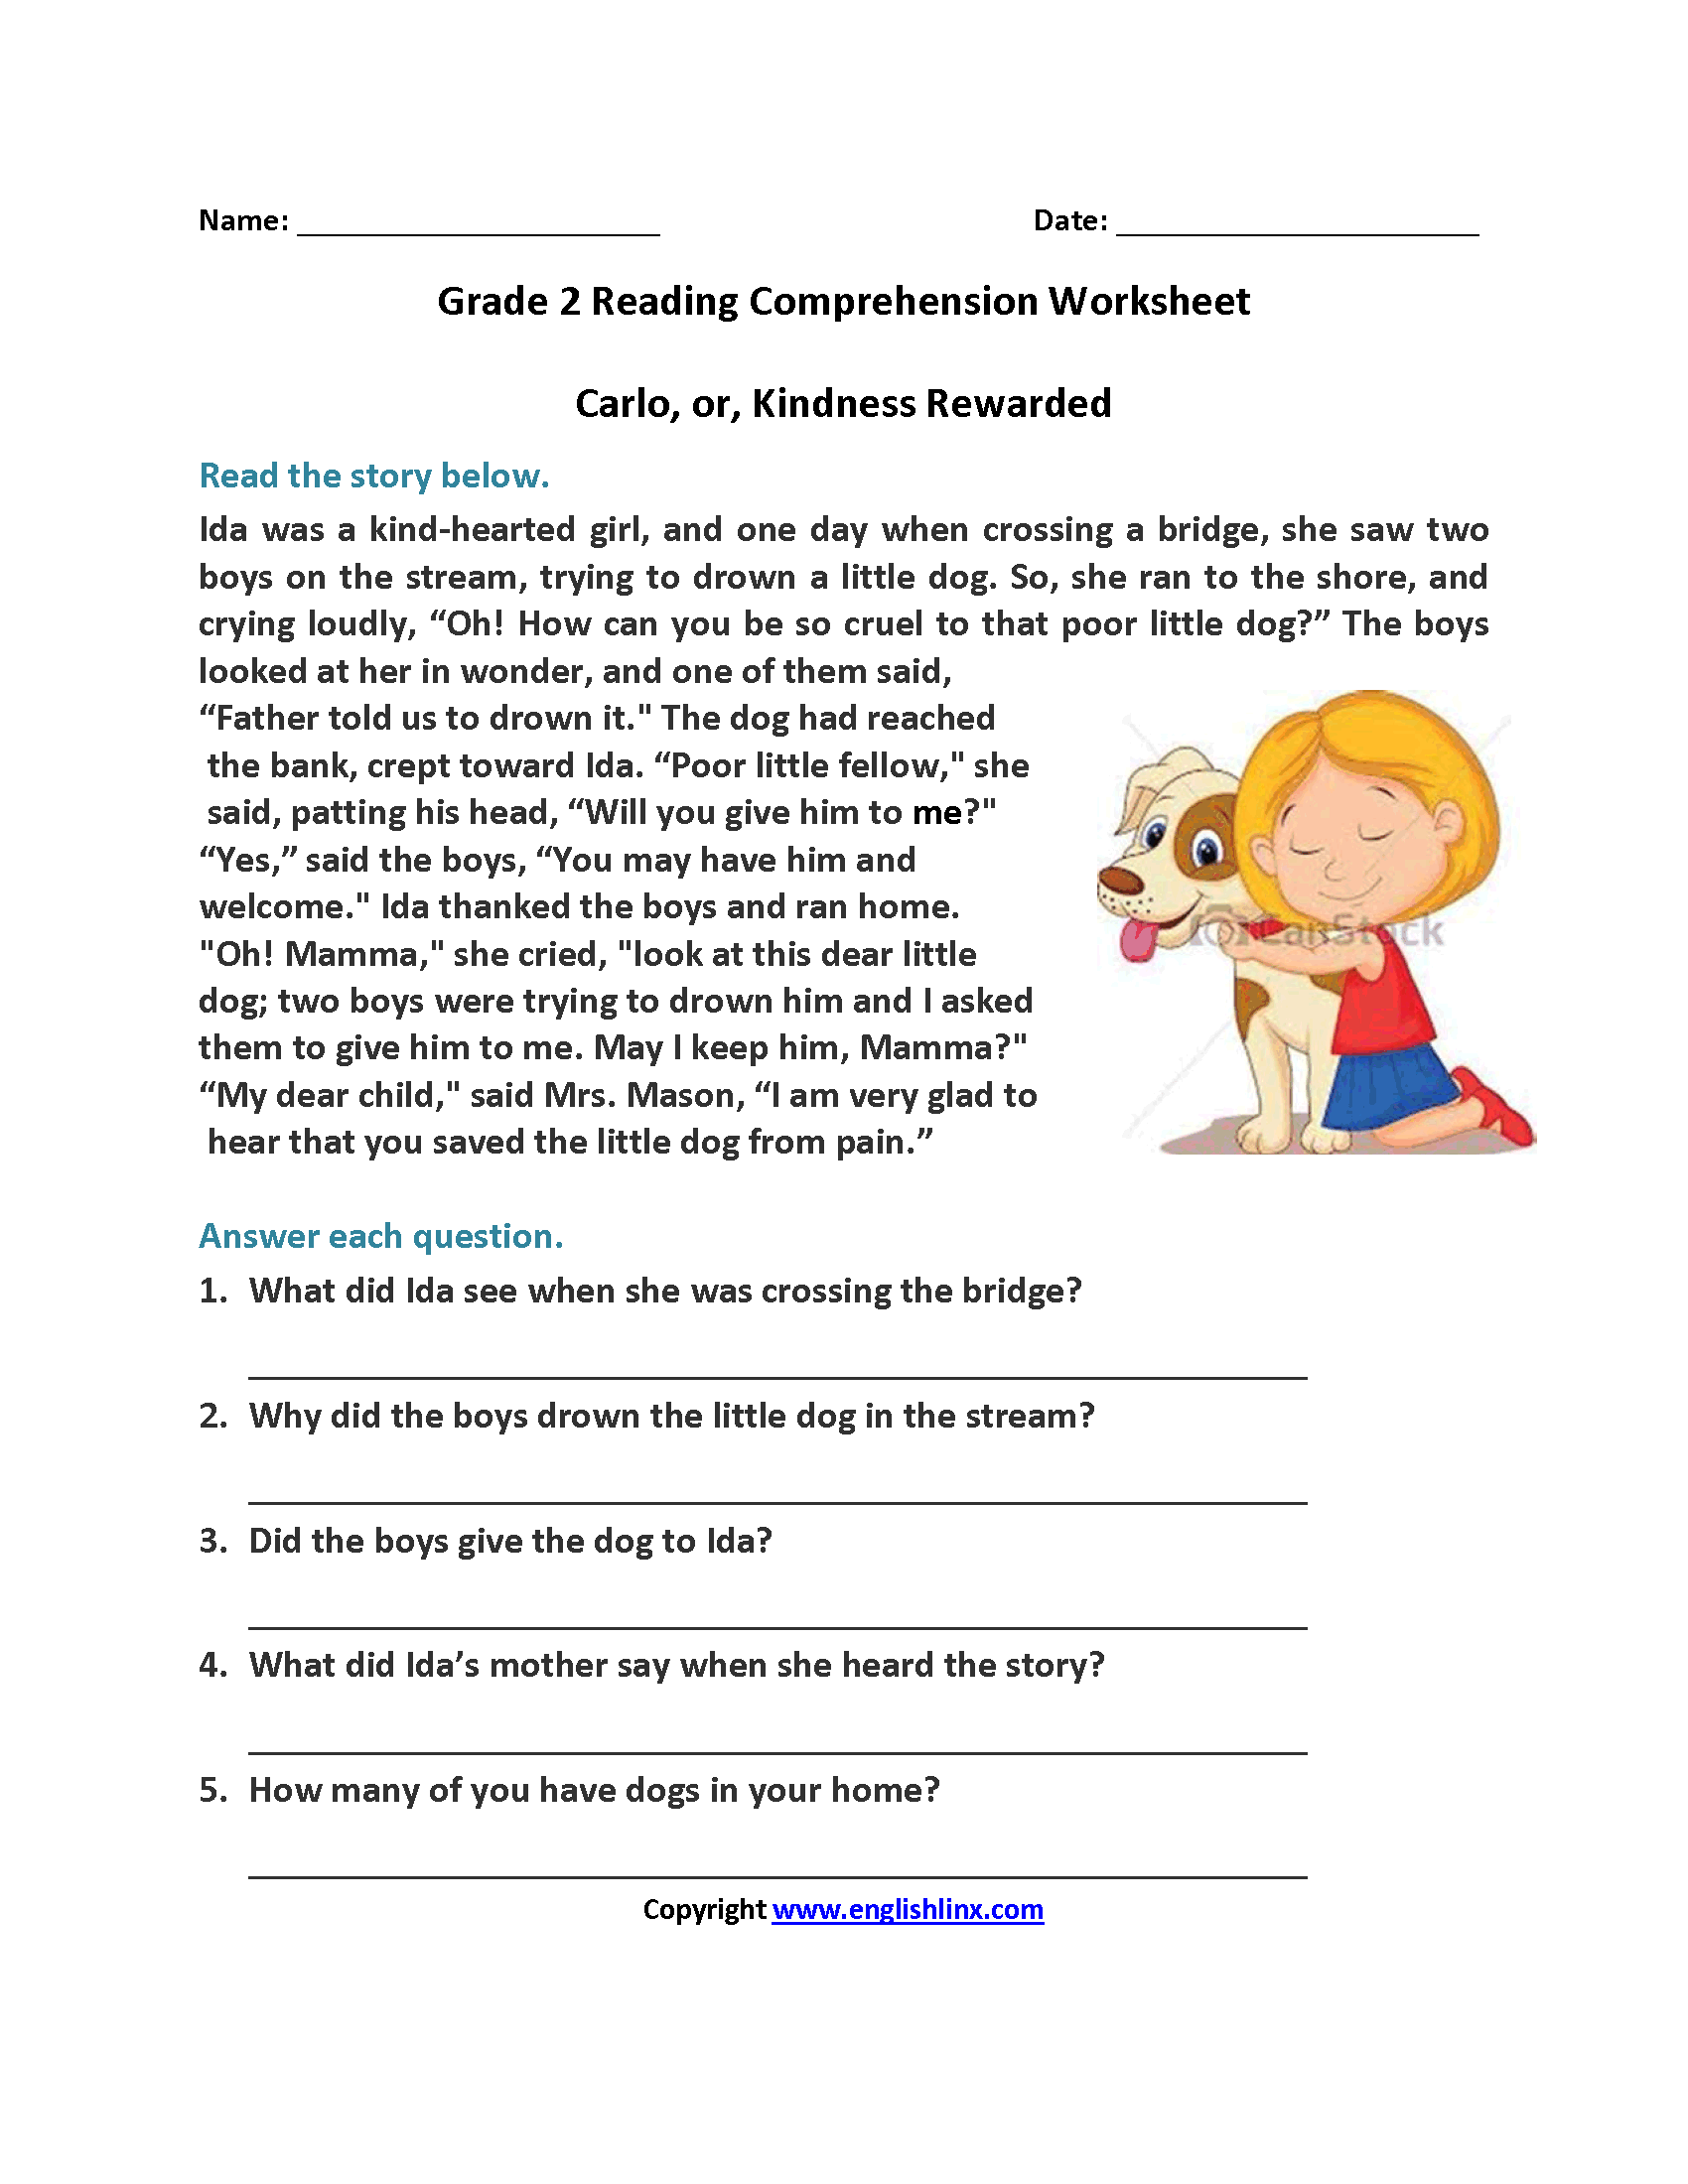 Worksheets Third Grade Reading Comprehension Worksheets carlo or kindness rewarded second grade reading worksheets worksheets